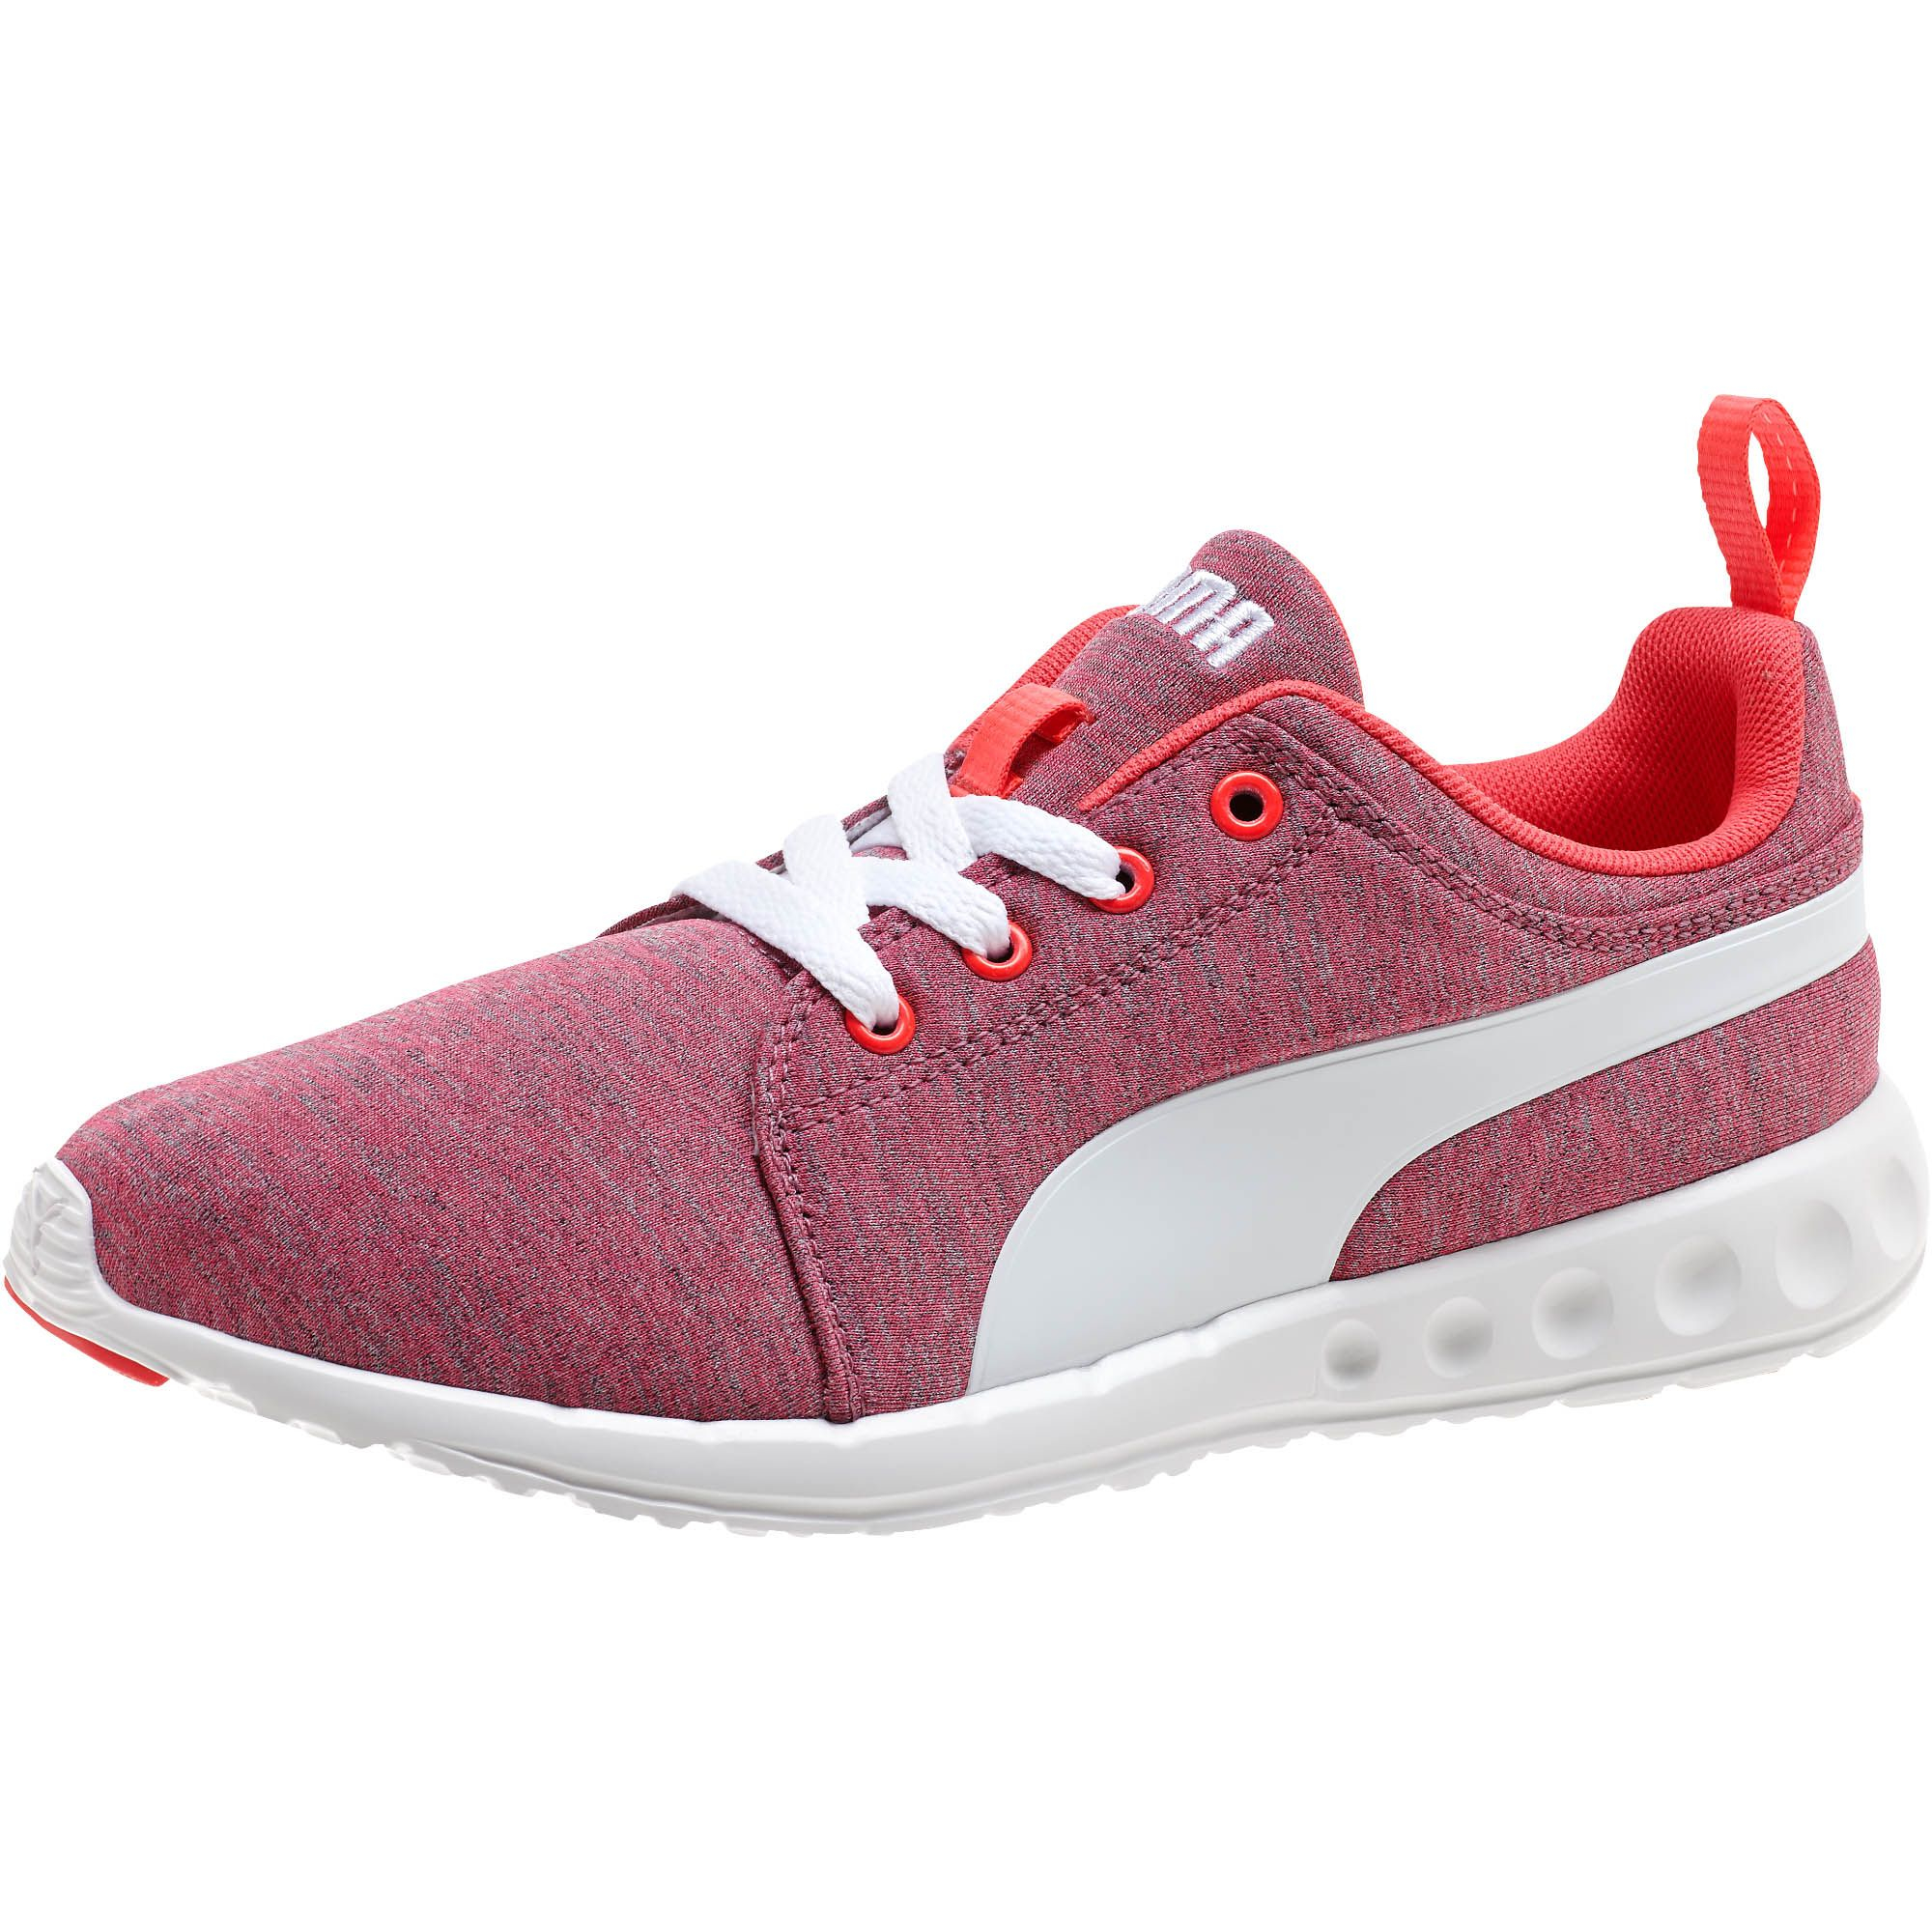 f5a8becbcf9c26 Lyst - PUMA Carson Runner Heather Women s Running Shoes in Red